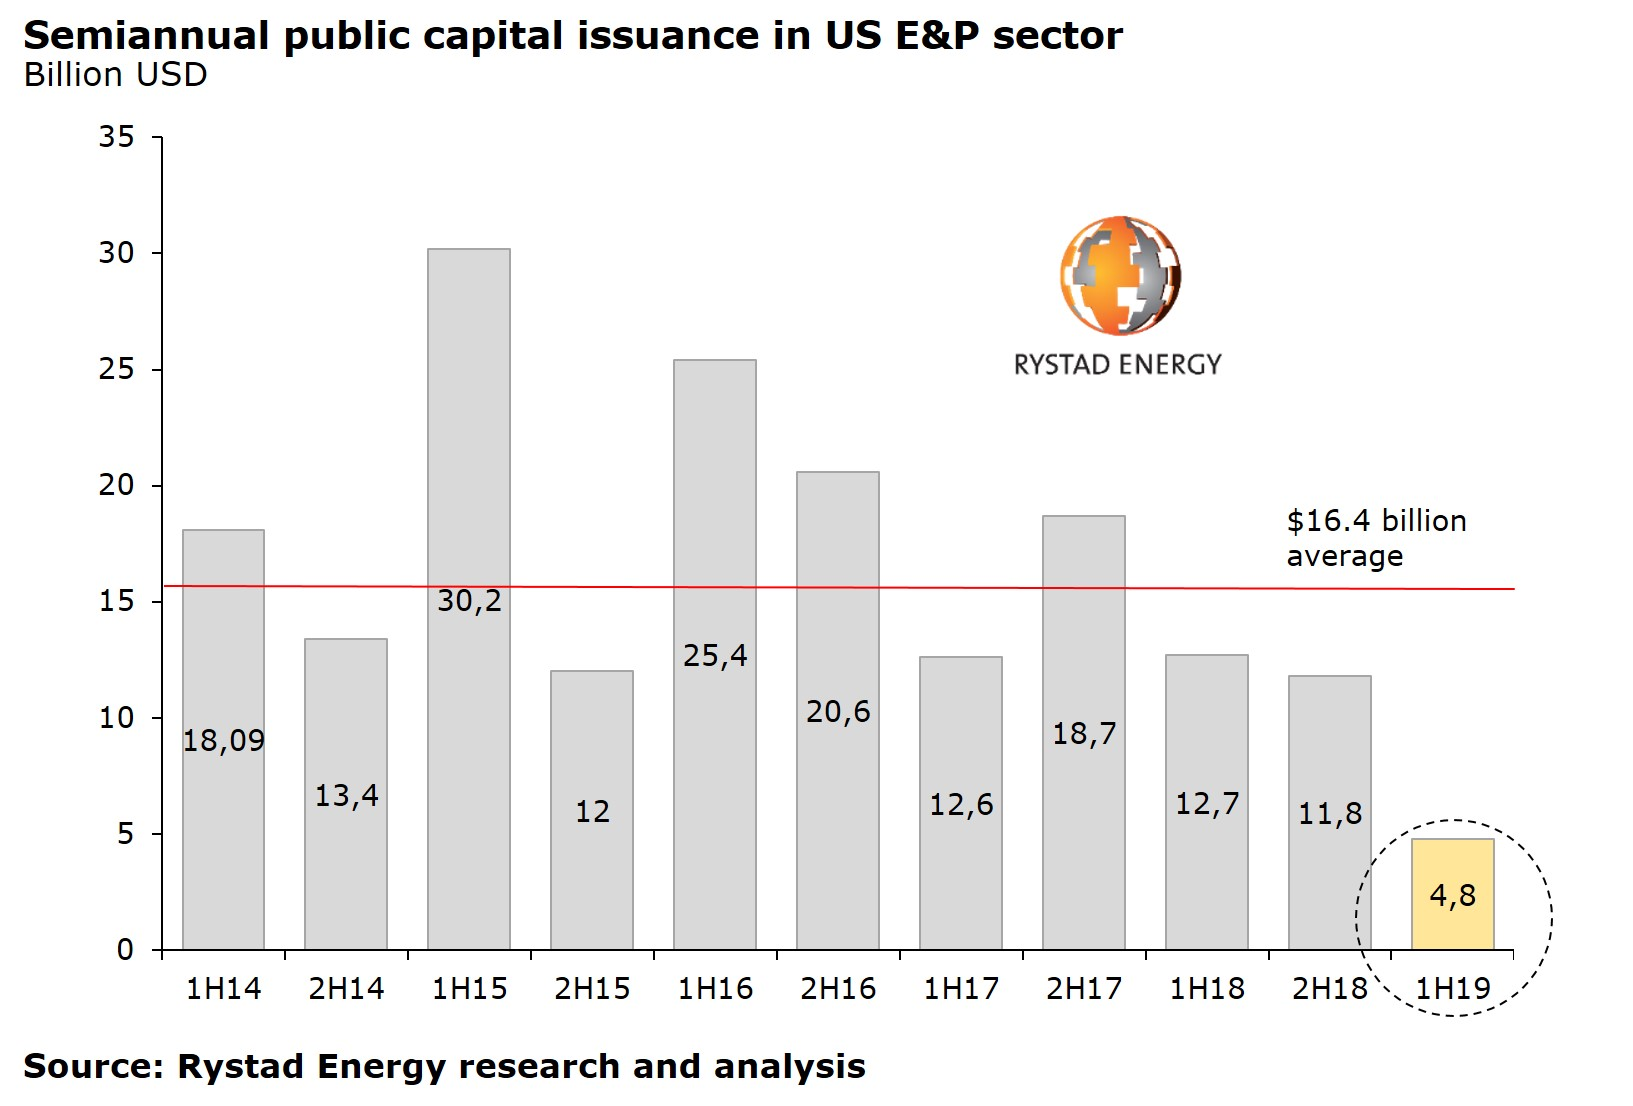 Semiannual public capital issuance in US E&P sector Rystad Energy